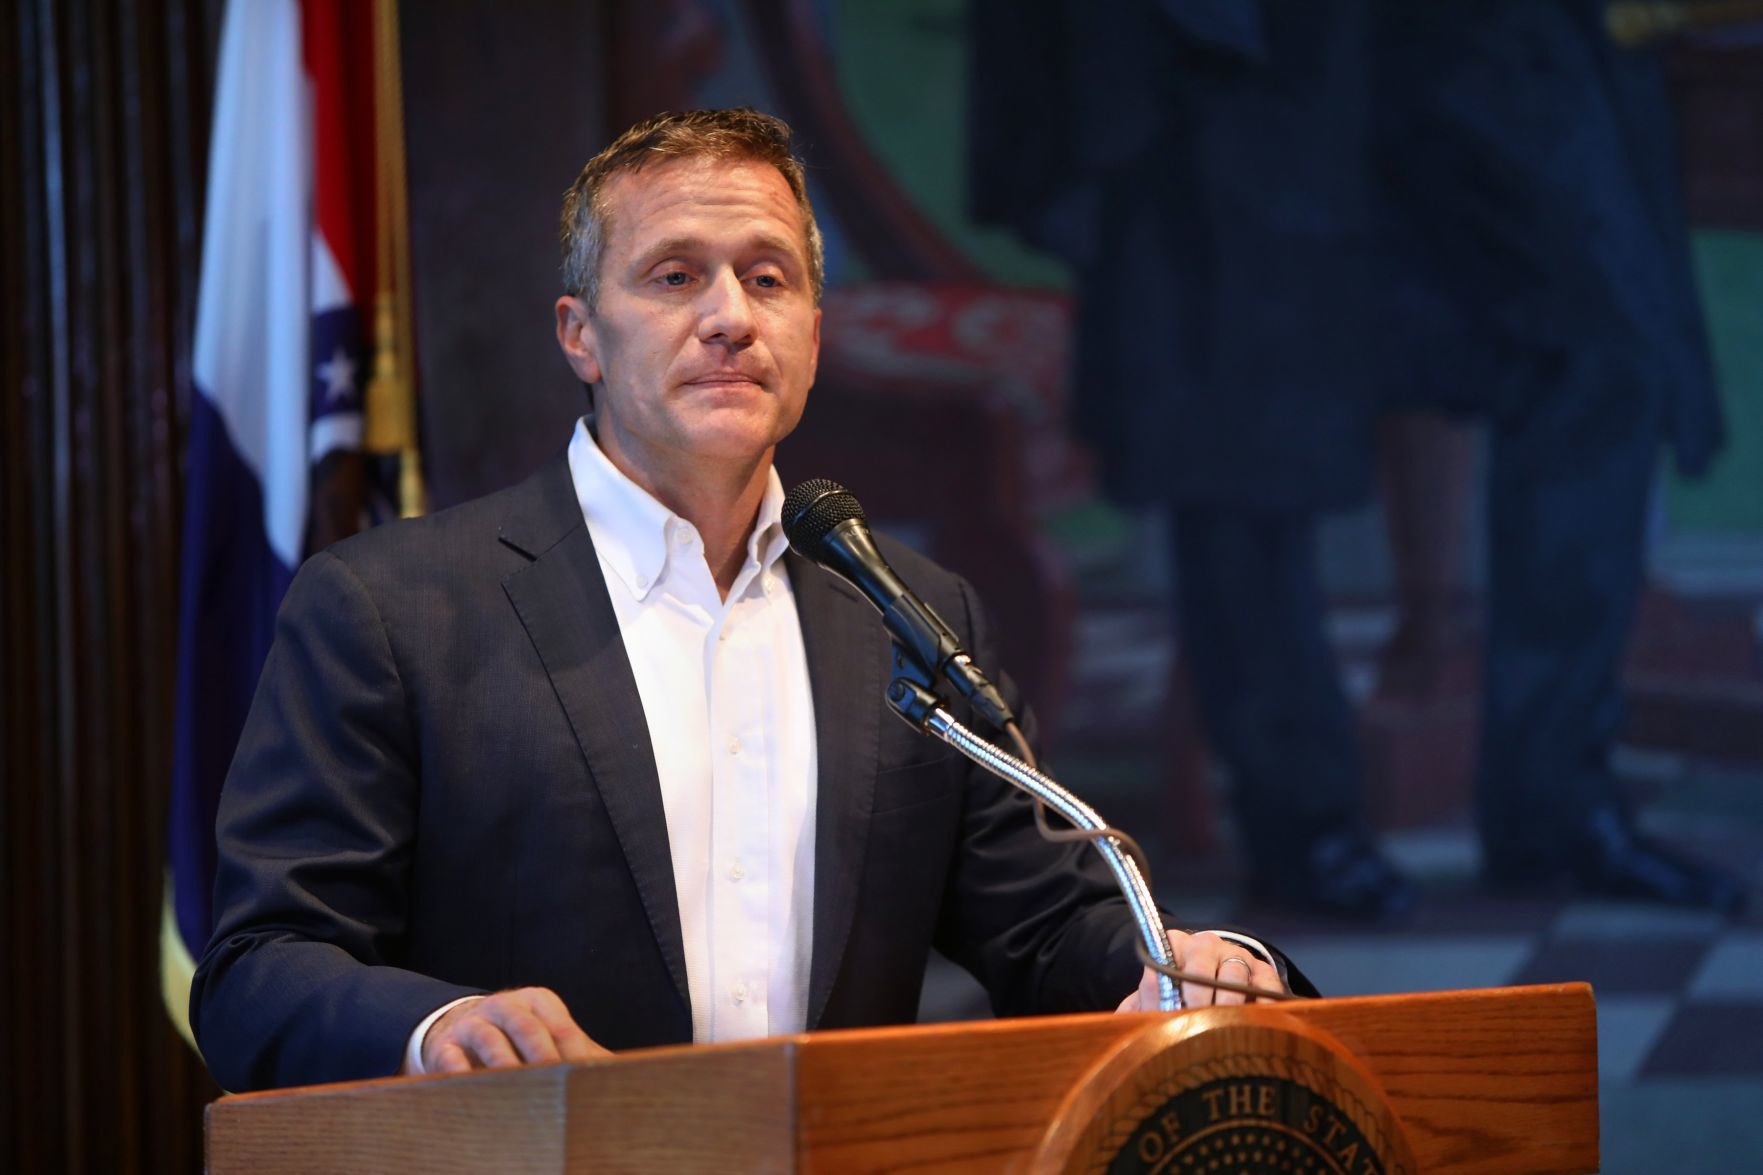 Eric Greitens resigns prosecutor drops computer tampering